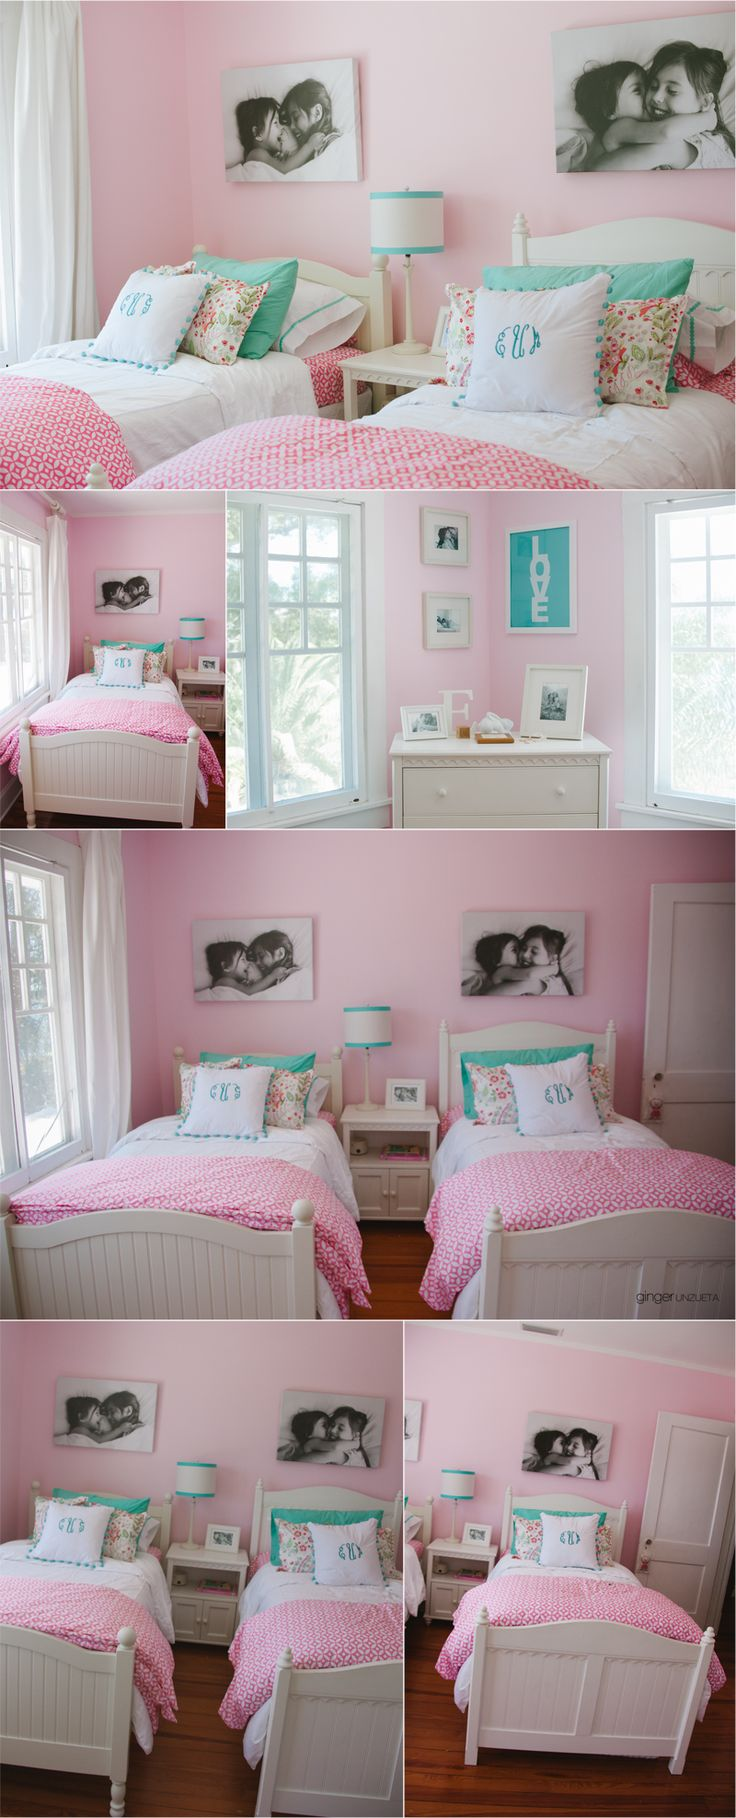 Except I would use turquoise for the walls - that's too much pink for me!